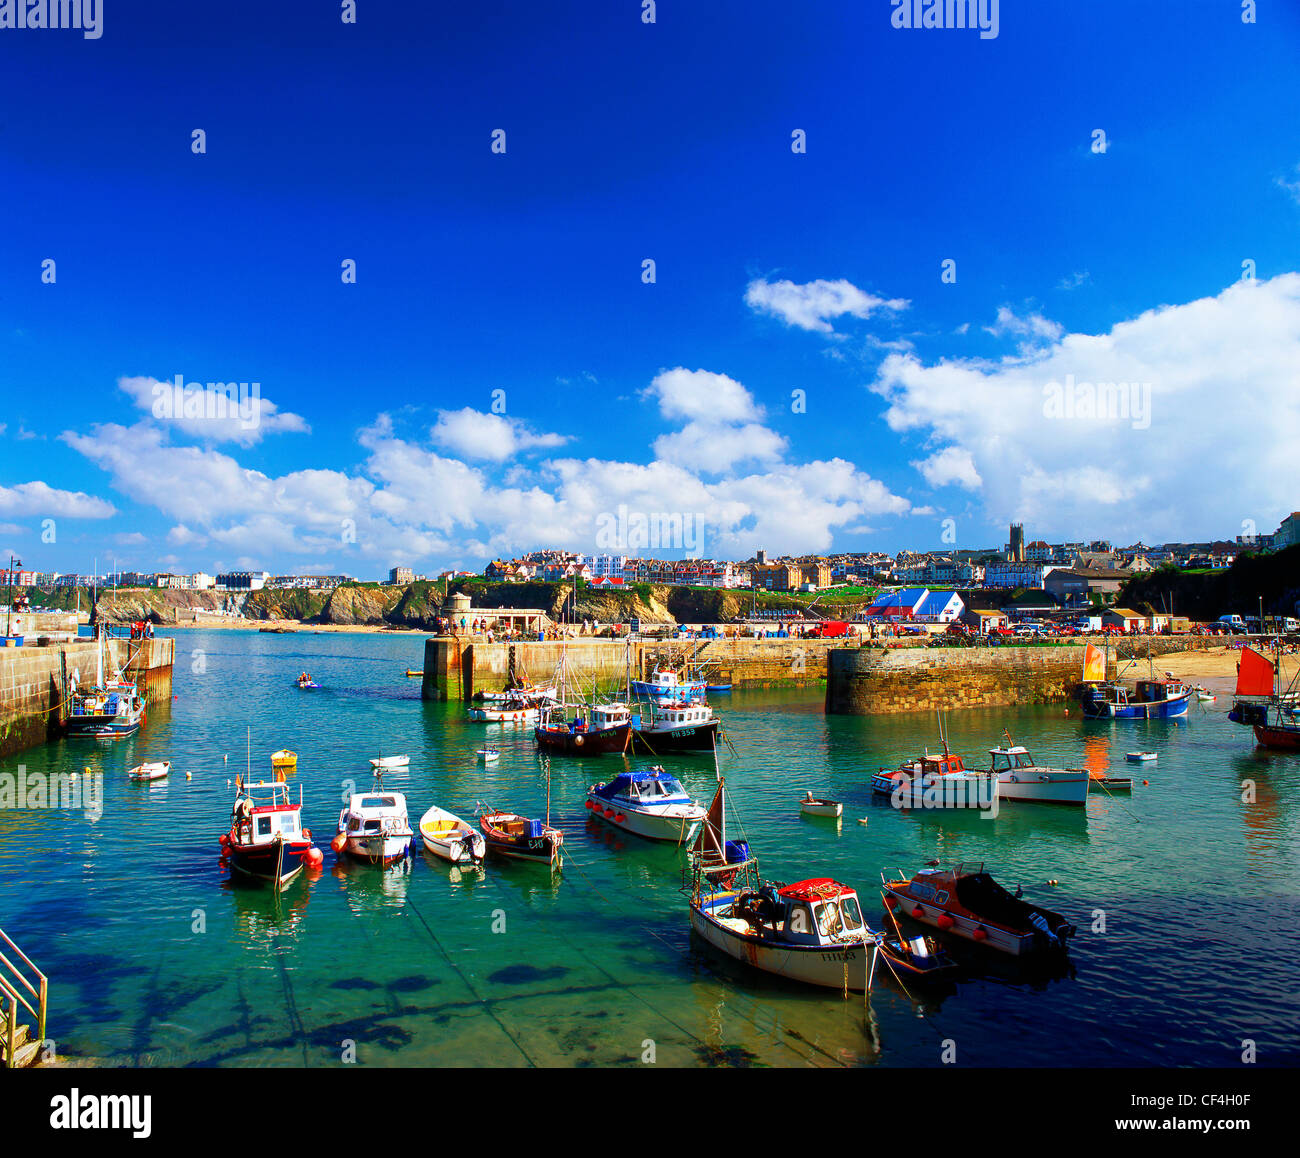 The 17th century harbour at Newquay. The harbour was central to the heyday of the Cornish Pilchard industry. - Stock Image